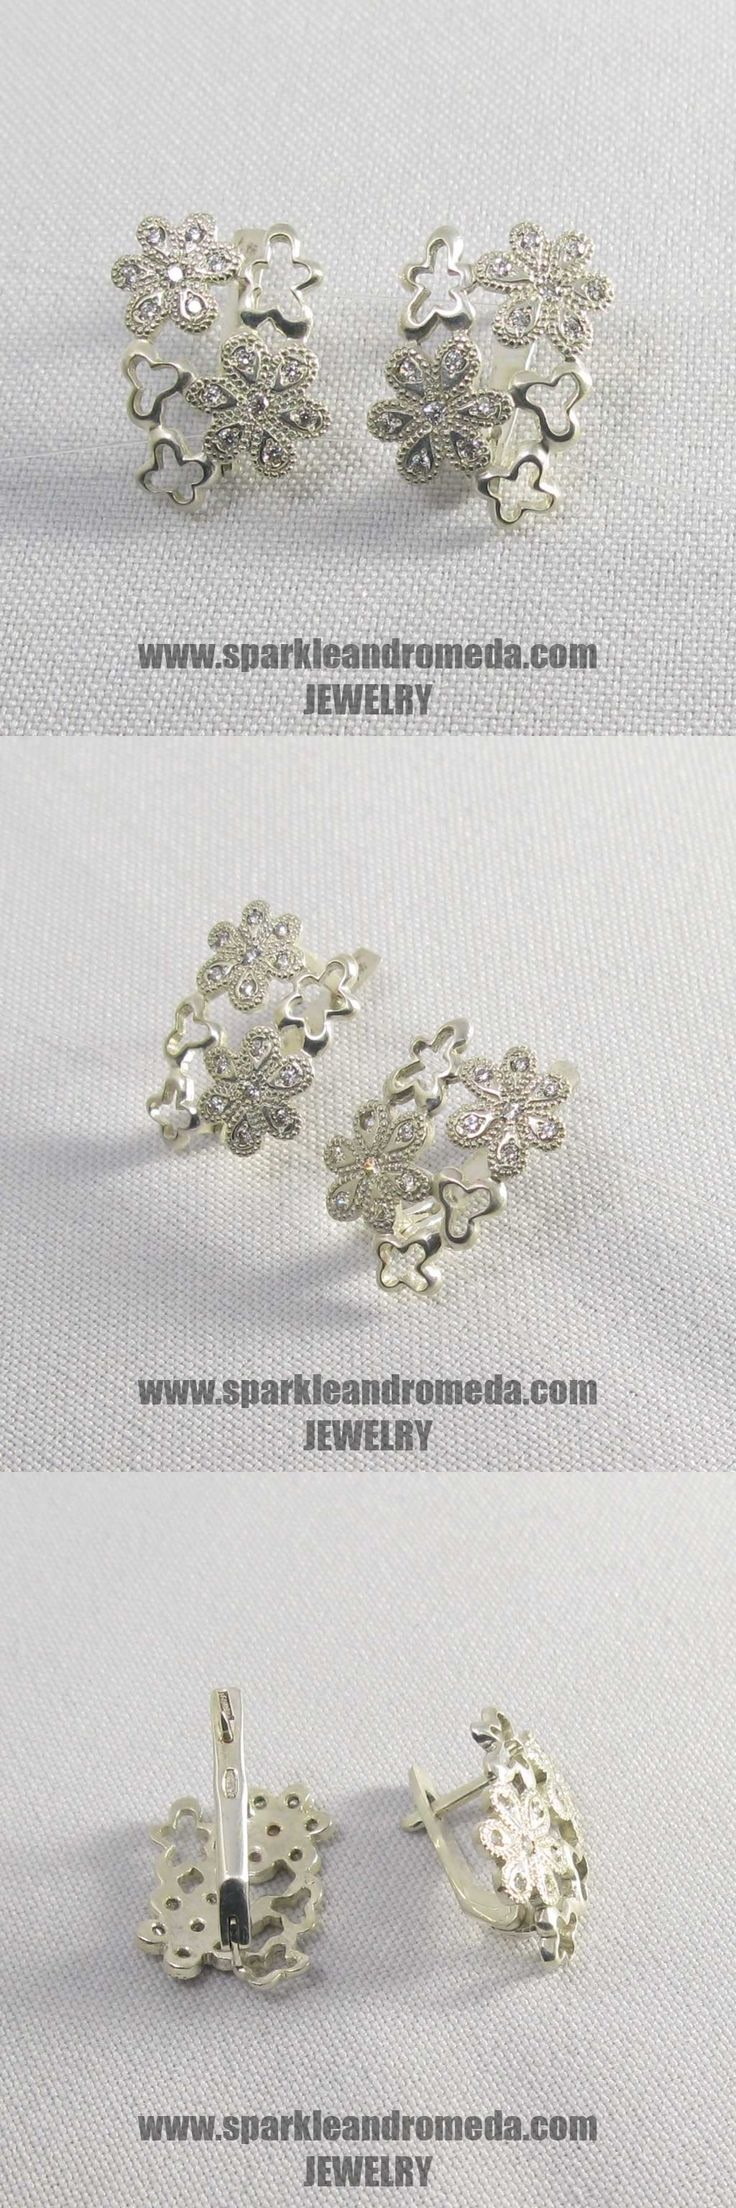 Sterling 925 silver earrings with 4 round 1,5 mm and 24 round 1,25 mm white color cubic zirconia gemstones.